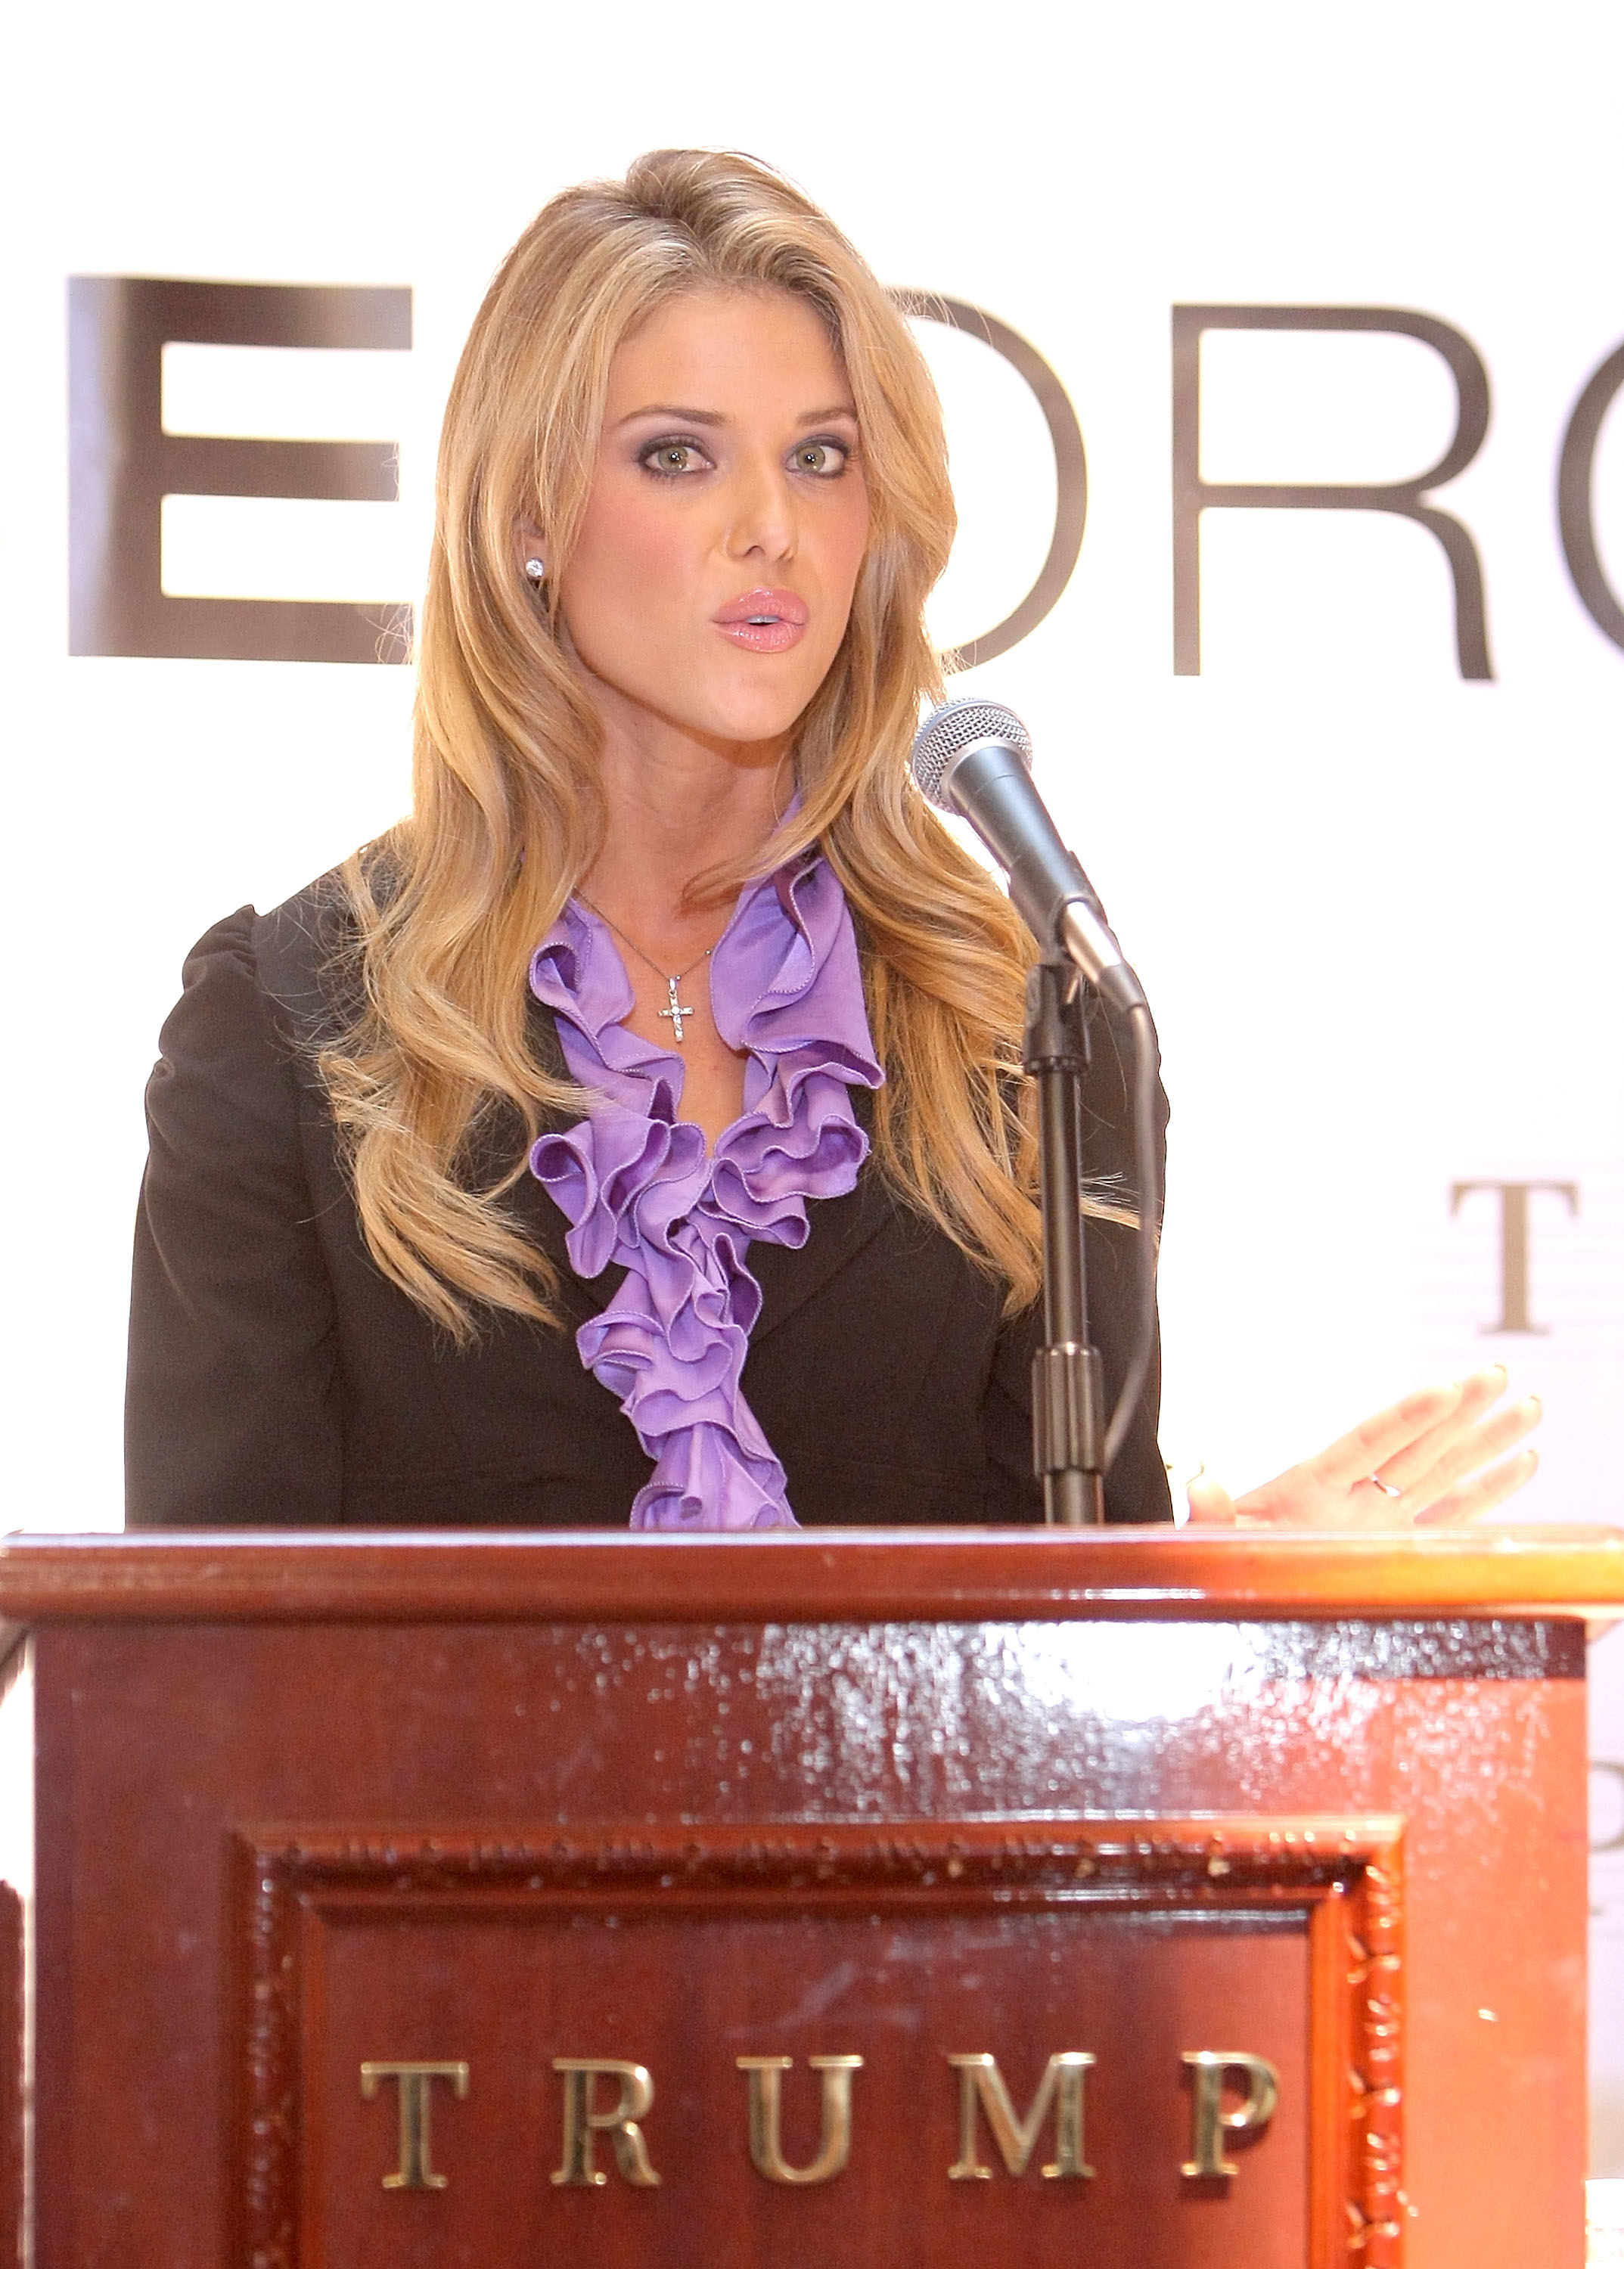 Carrie speaking at a press conference at a podium featuring Trump's name